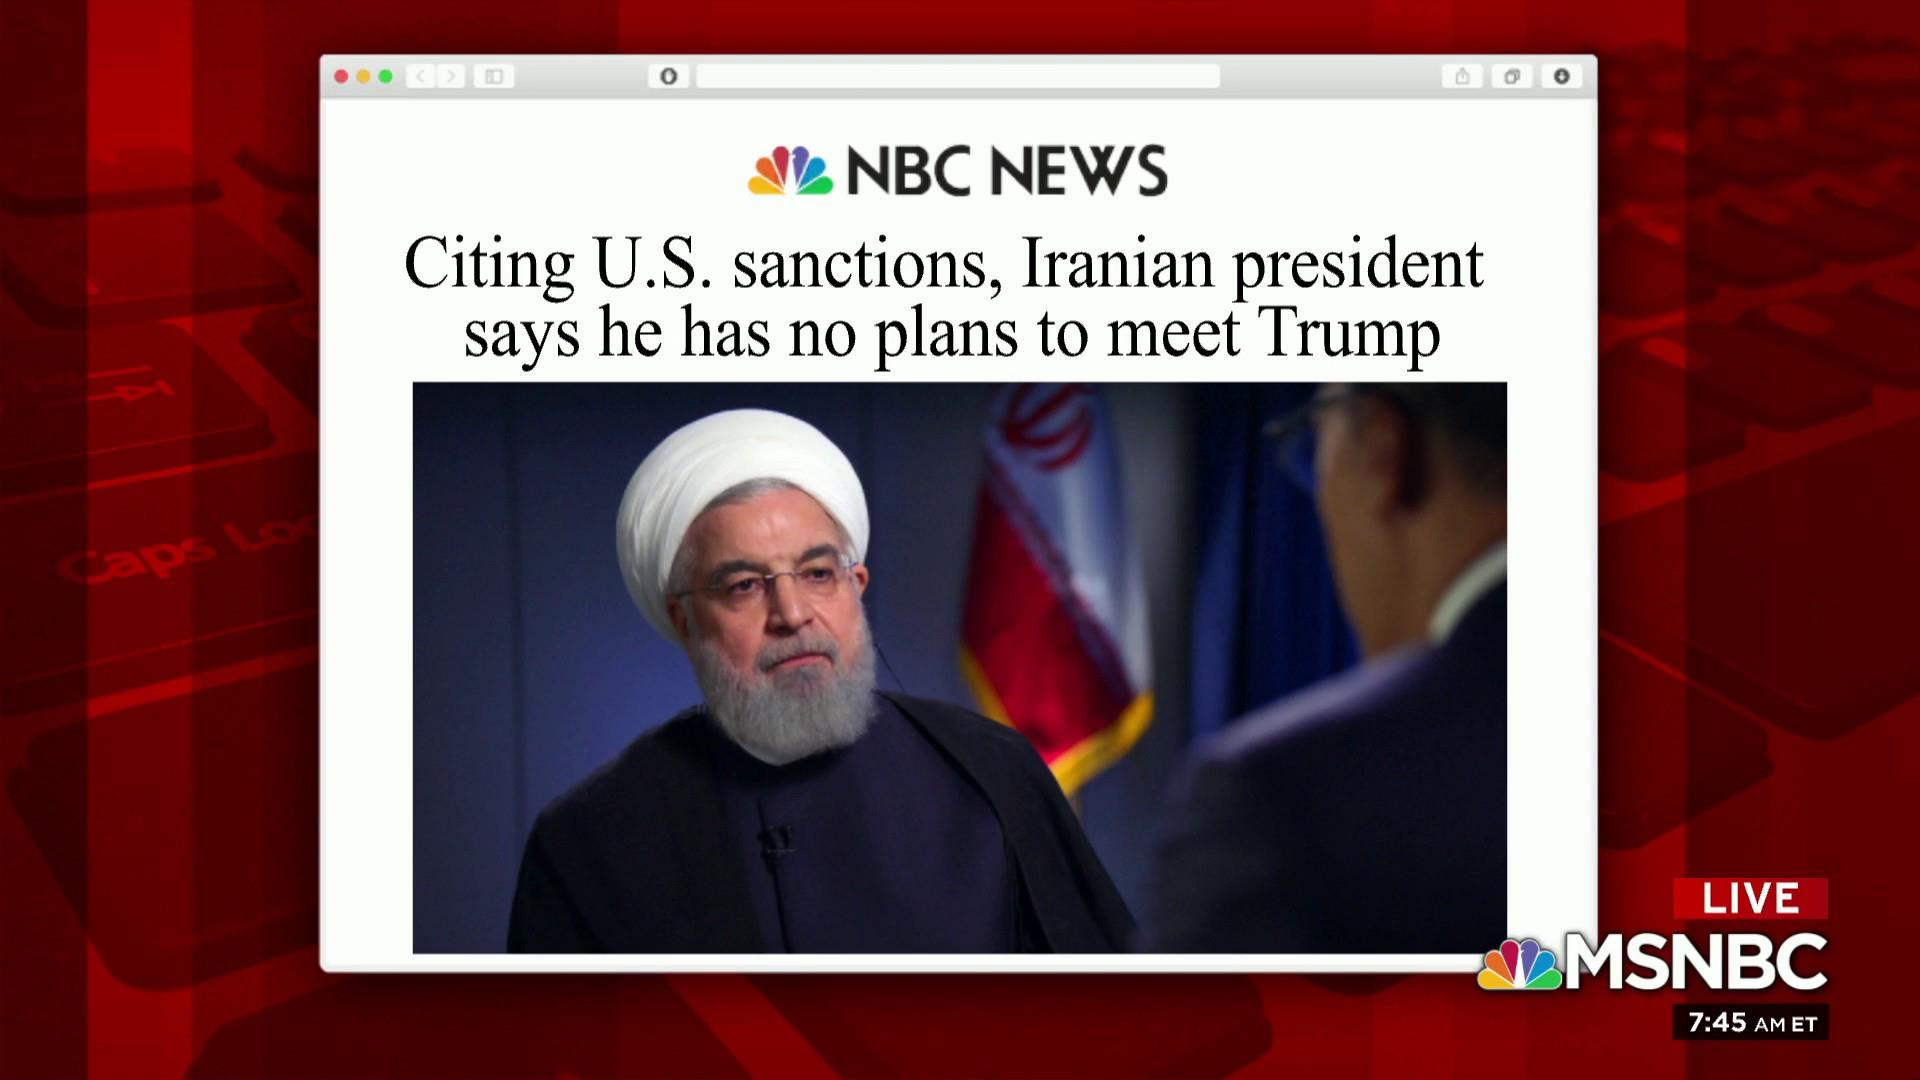 Trump says no plans to meet with Iranian president